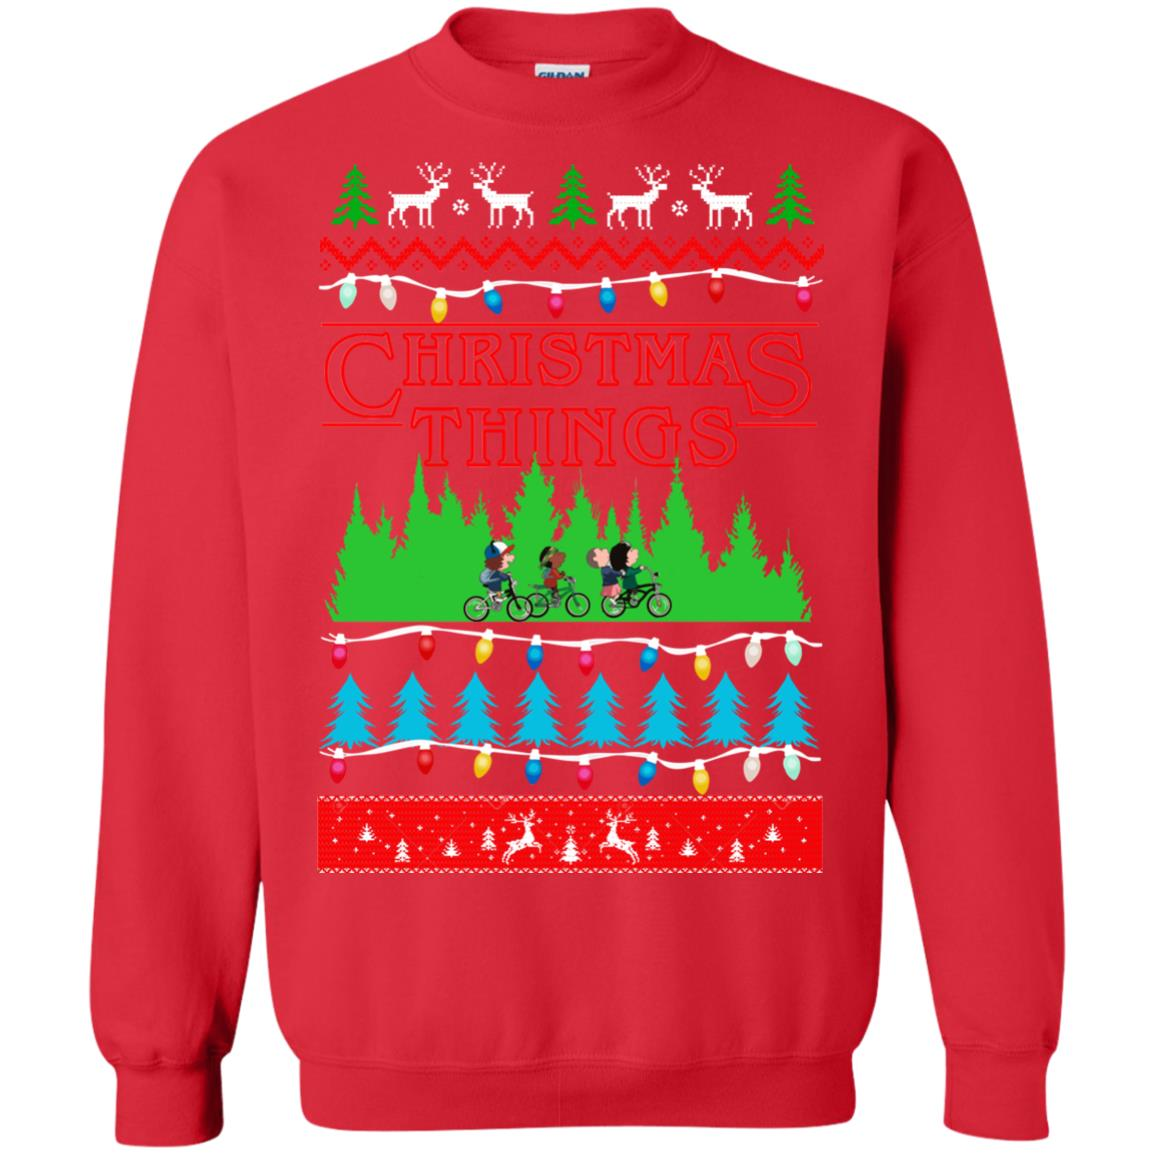 Stranger Things Ugly Christmas Sweater.Stranger Things Christmas Things Ugly Sweatshirt